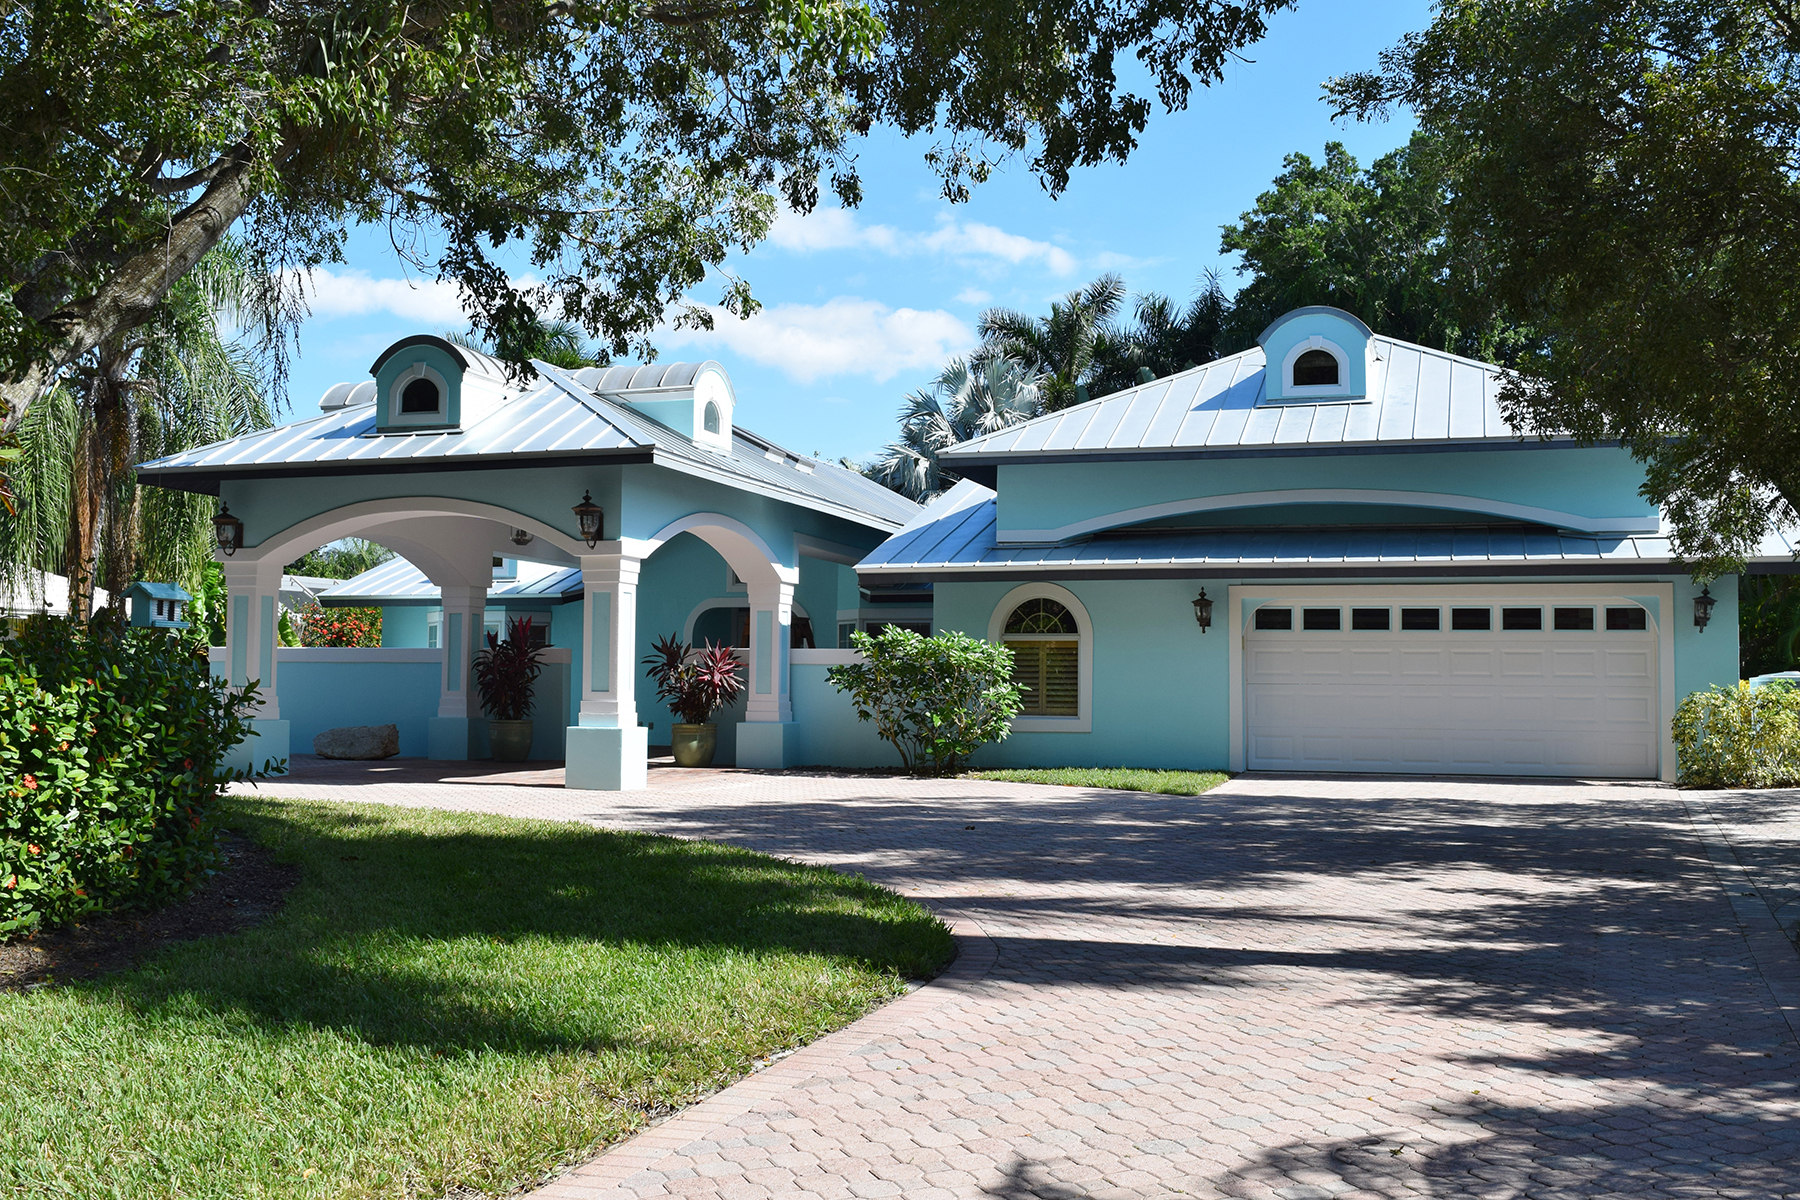 Single Family Home for Sale at PARK SHORE 700 Old Trail Dr Naples, Florida, 34103 United States